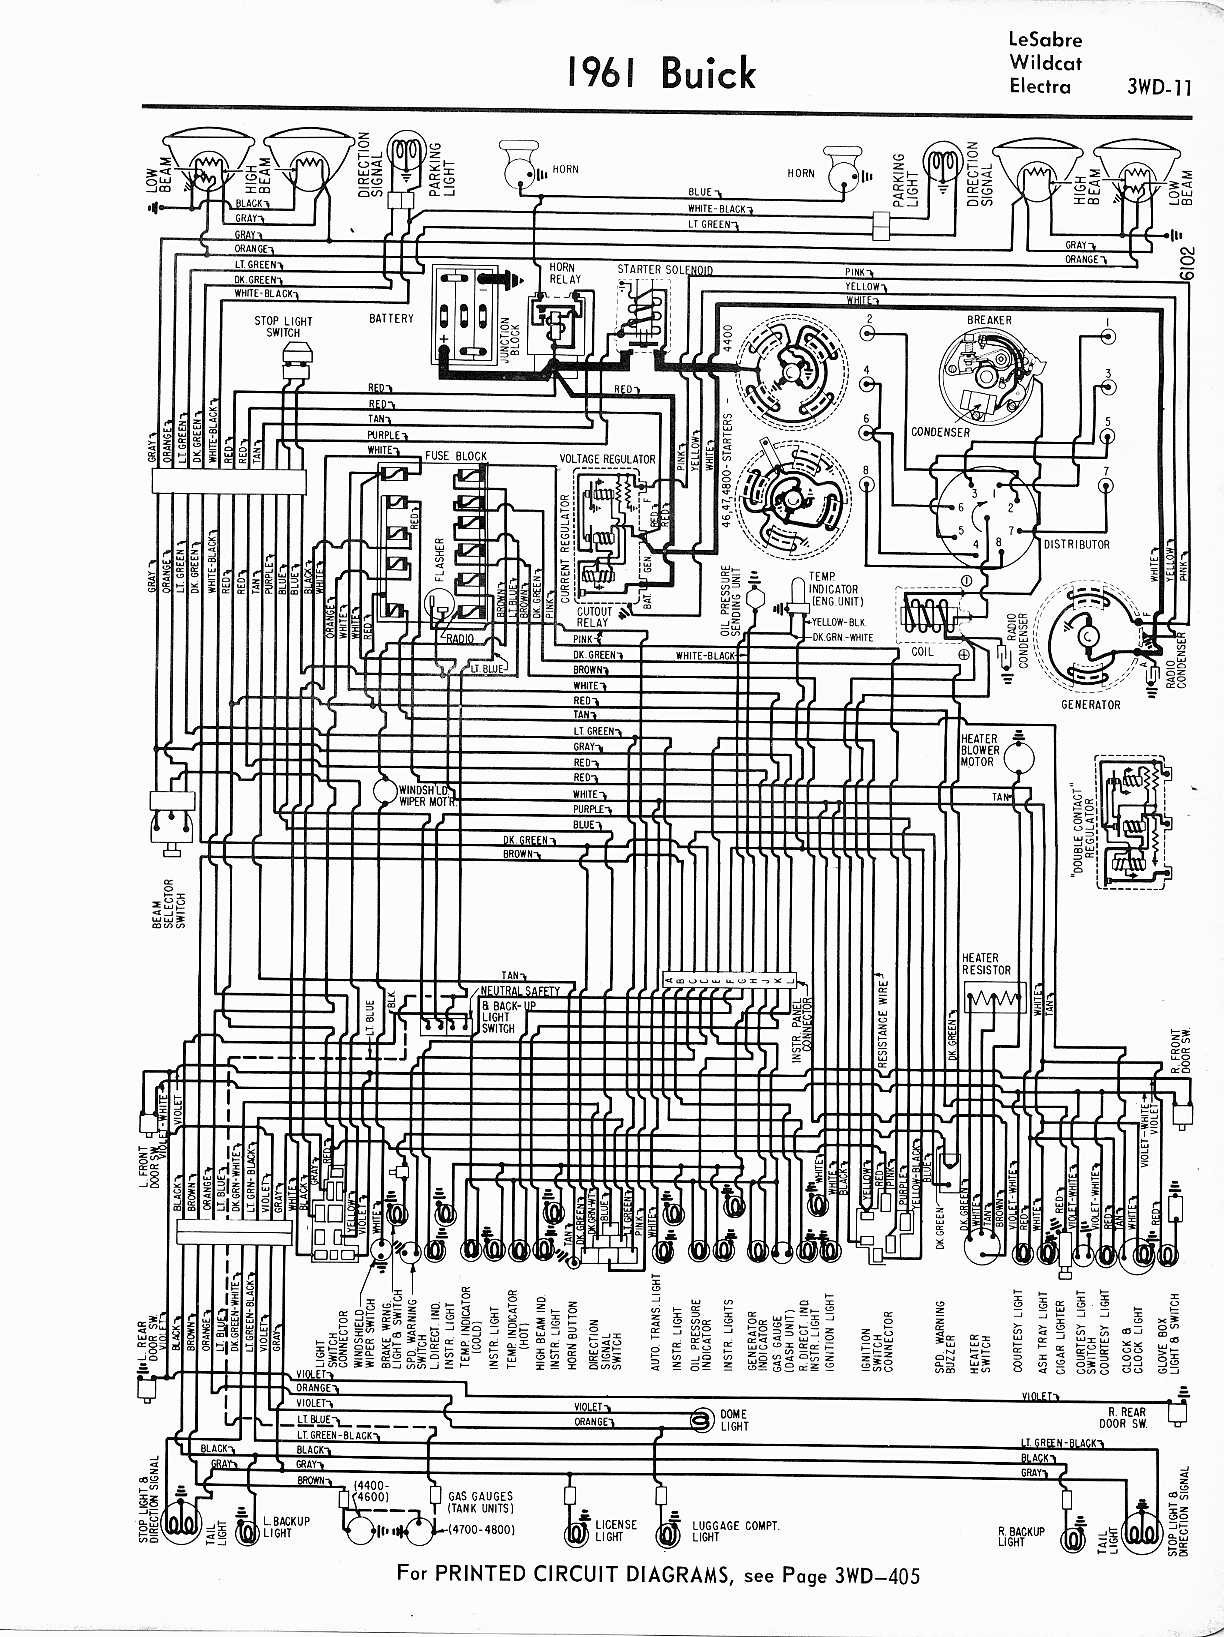 1999 Buick Century Wiring Diagram 2003 Buick Lesabre Radio Wiring Diagram Shahsramblings Of 1999 Buick Century Wiring Diagram